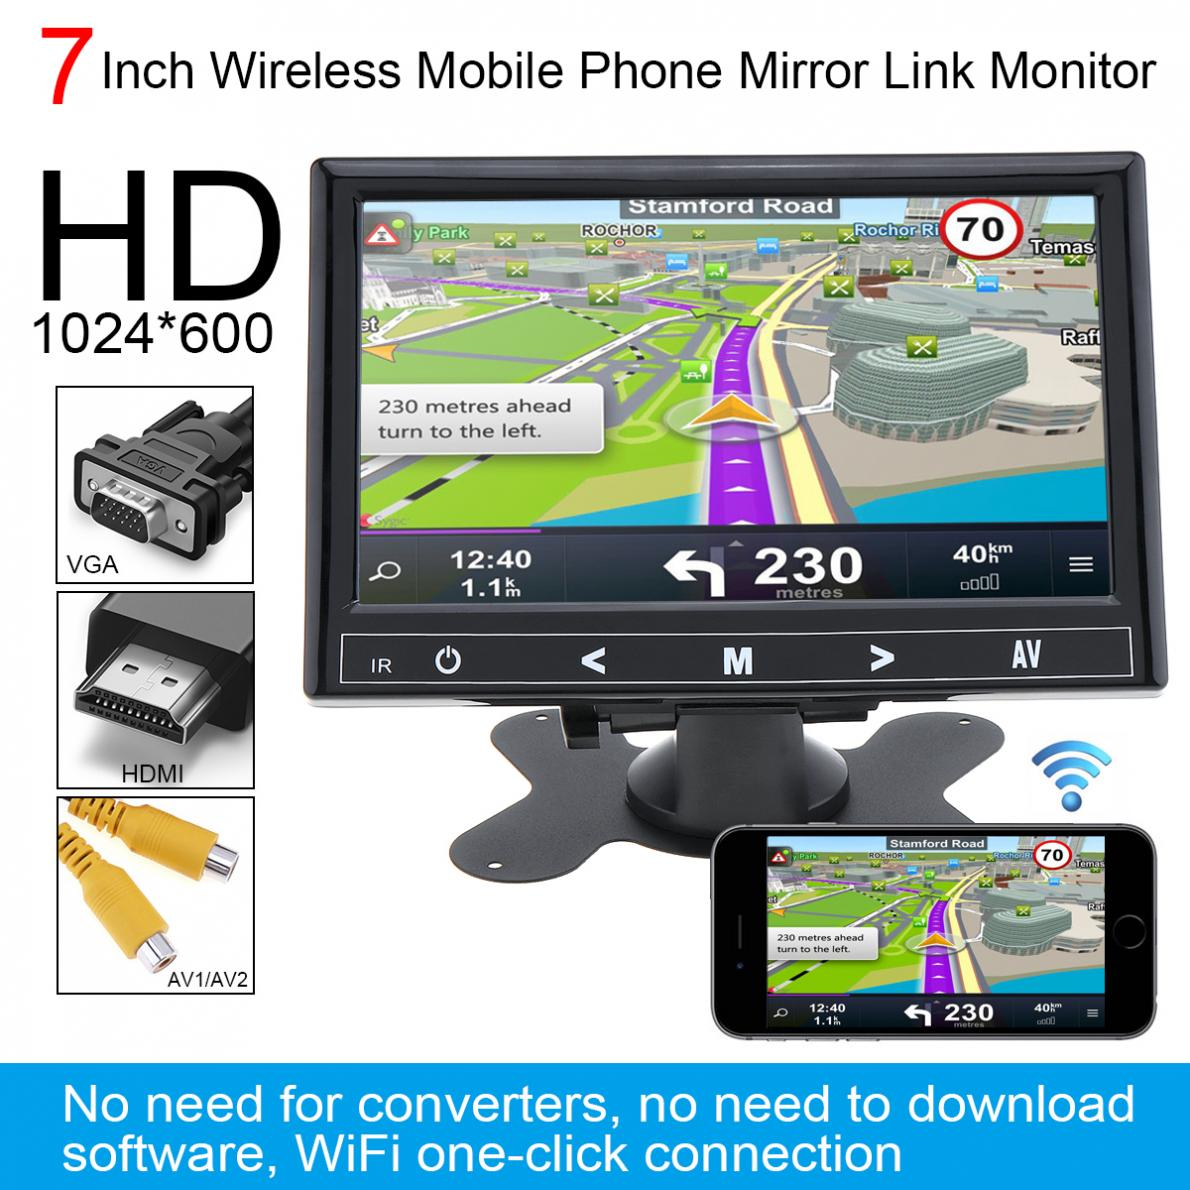 7 Inch HD IPS 1024 600 TFT LCD Color Multifunction Car Headrest Monitor support HDMI VGA